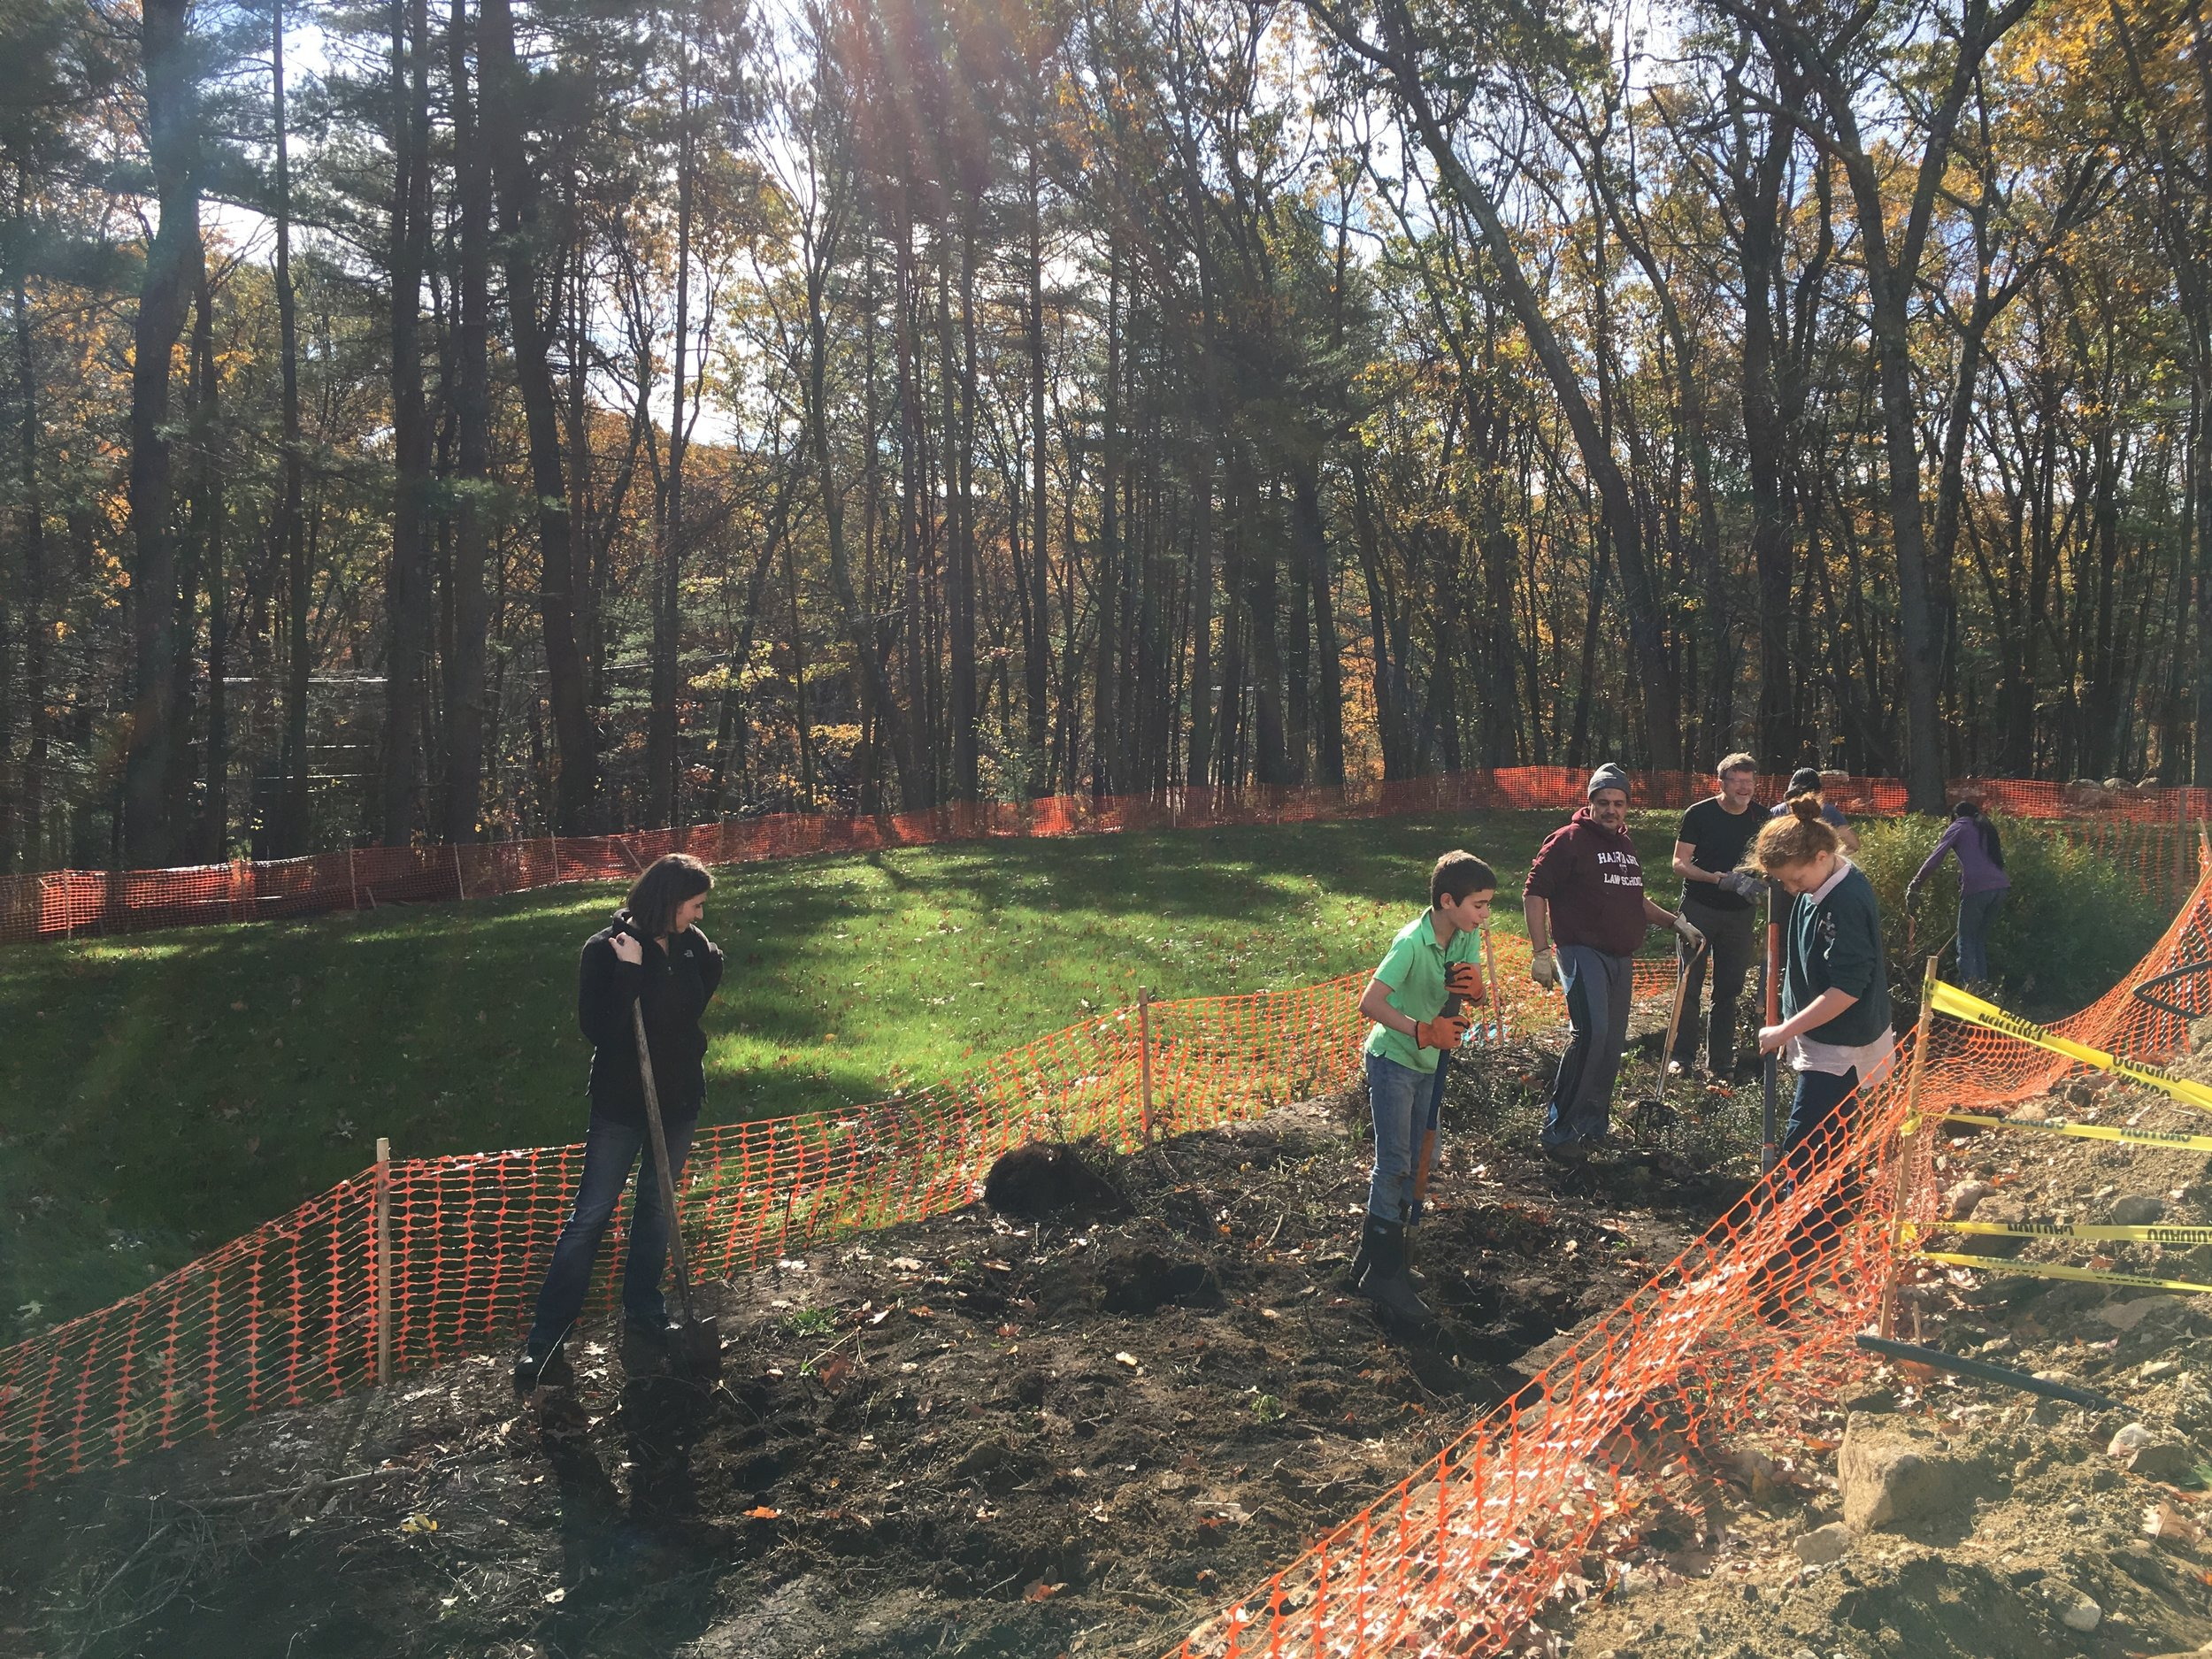 Last Saturday, parents, students, and teachers gathered to clear woods and clean out beds at our new property at 100 Bedford Road. We will plant a pollinator garden in this bed next spring.